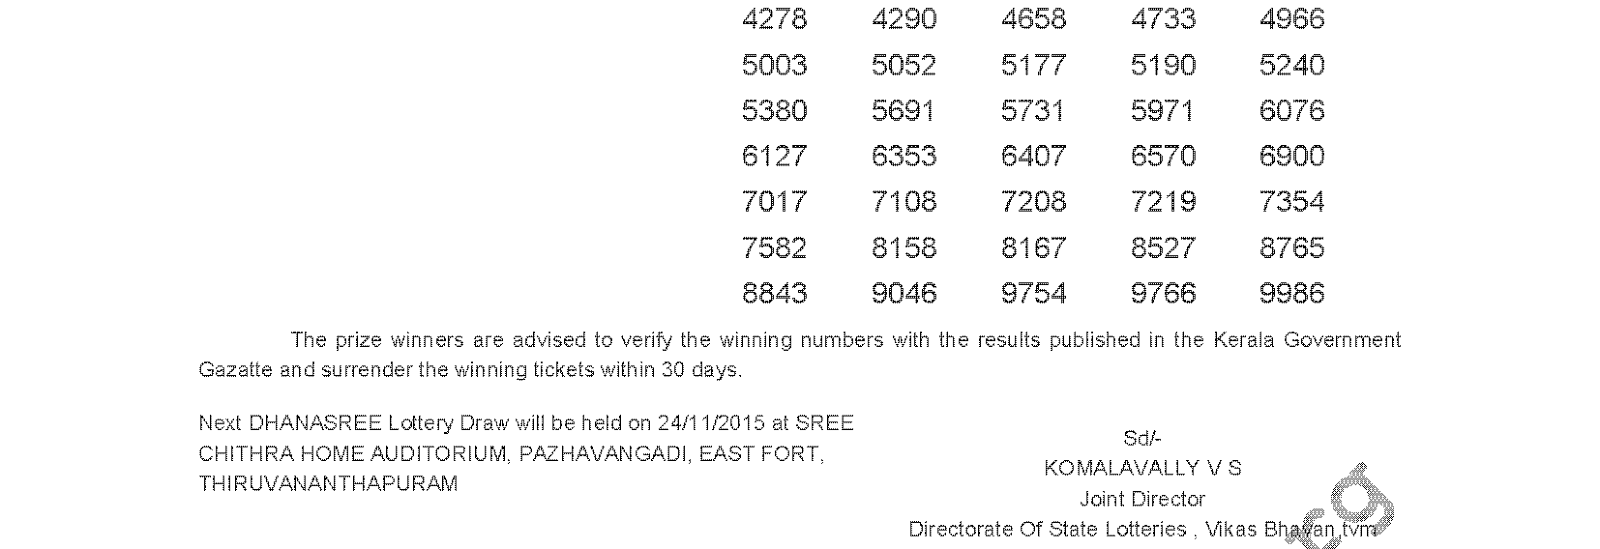 DHANASREE Lottery DS 212 Result 17-11-2015